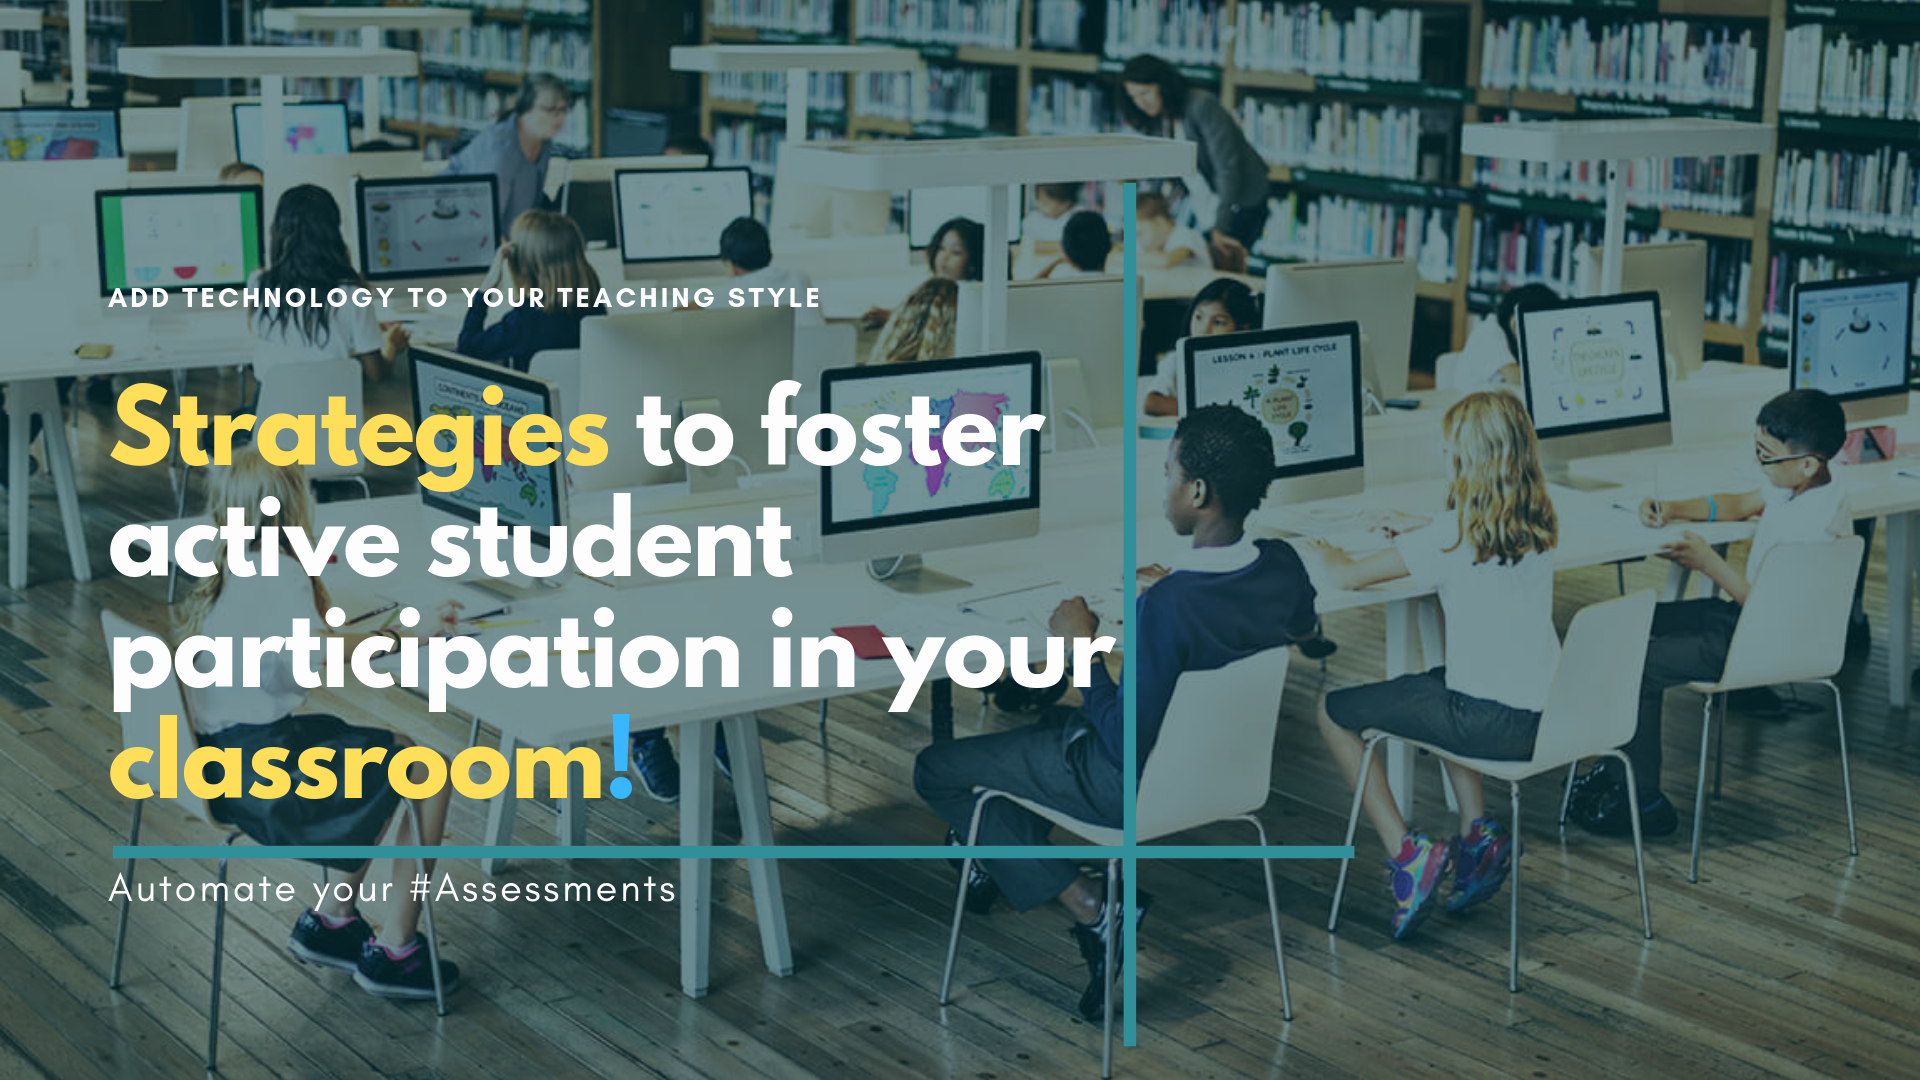 Strategies to foster active student participation in your classroom!